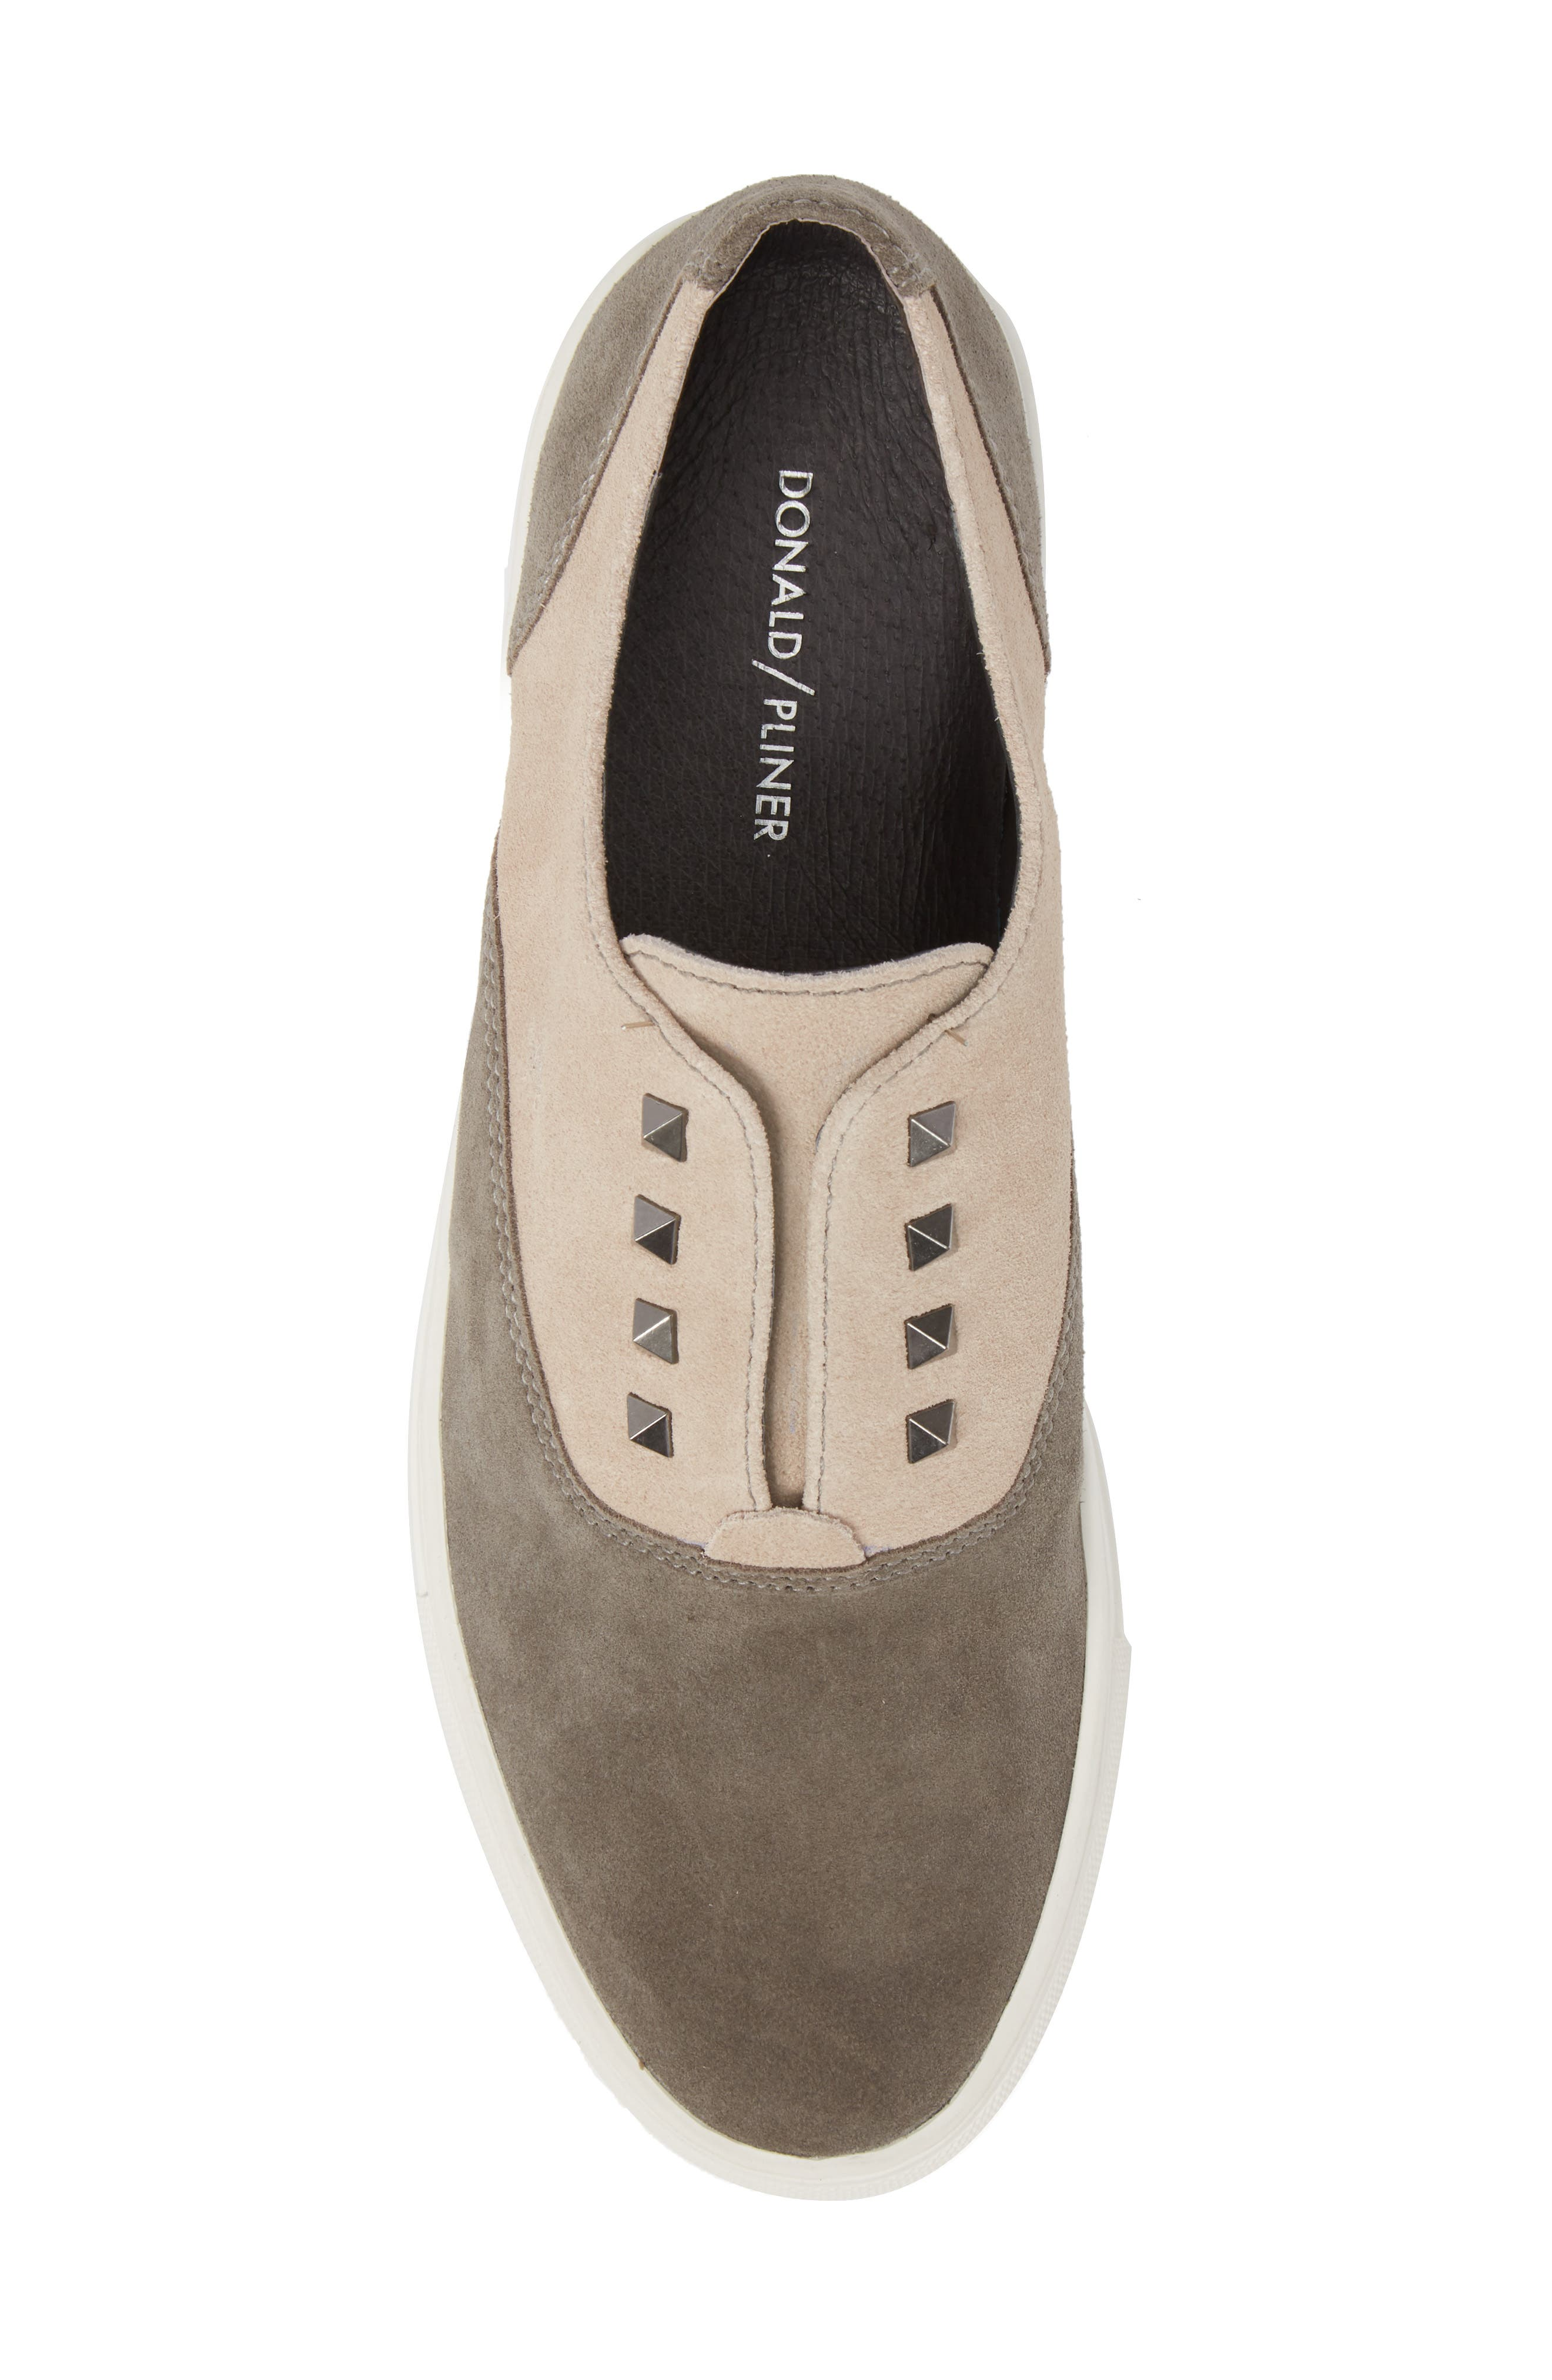 Aryo Studded Laceless Sneaker,                             Alternate thumbnail 5, color,                             Chocolate/ Sand Suede